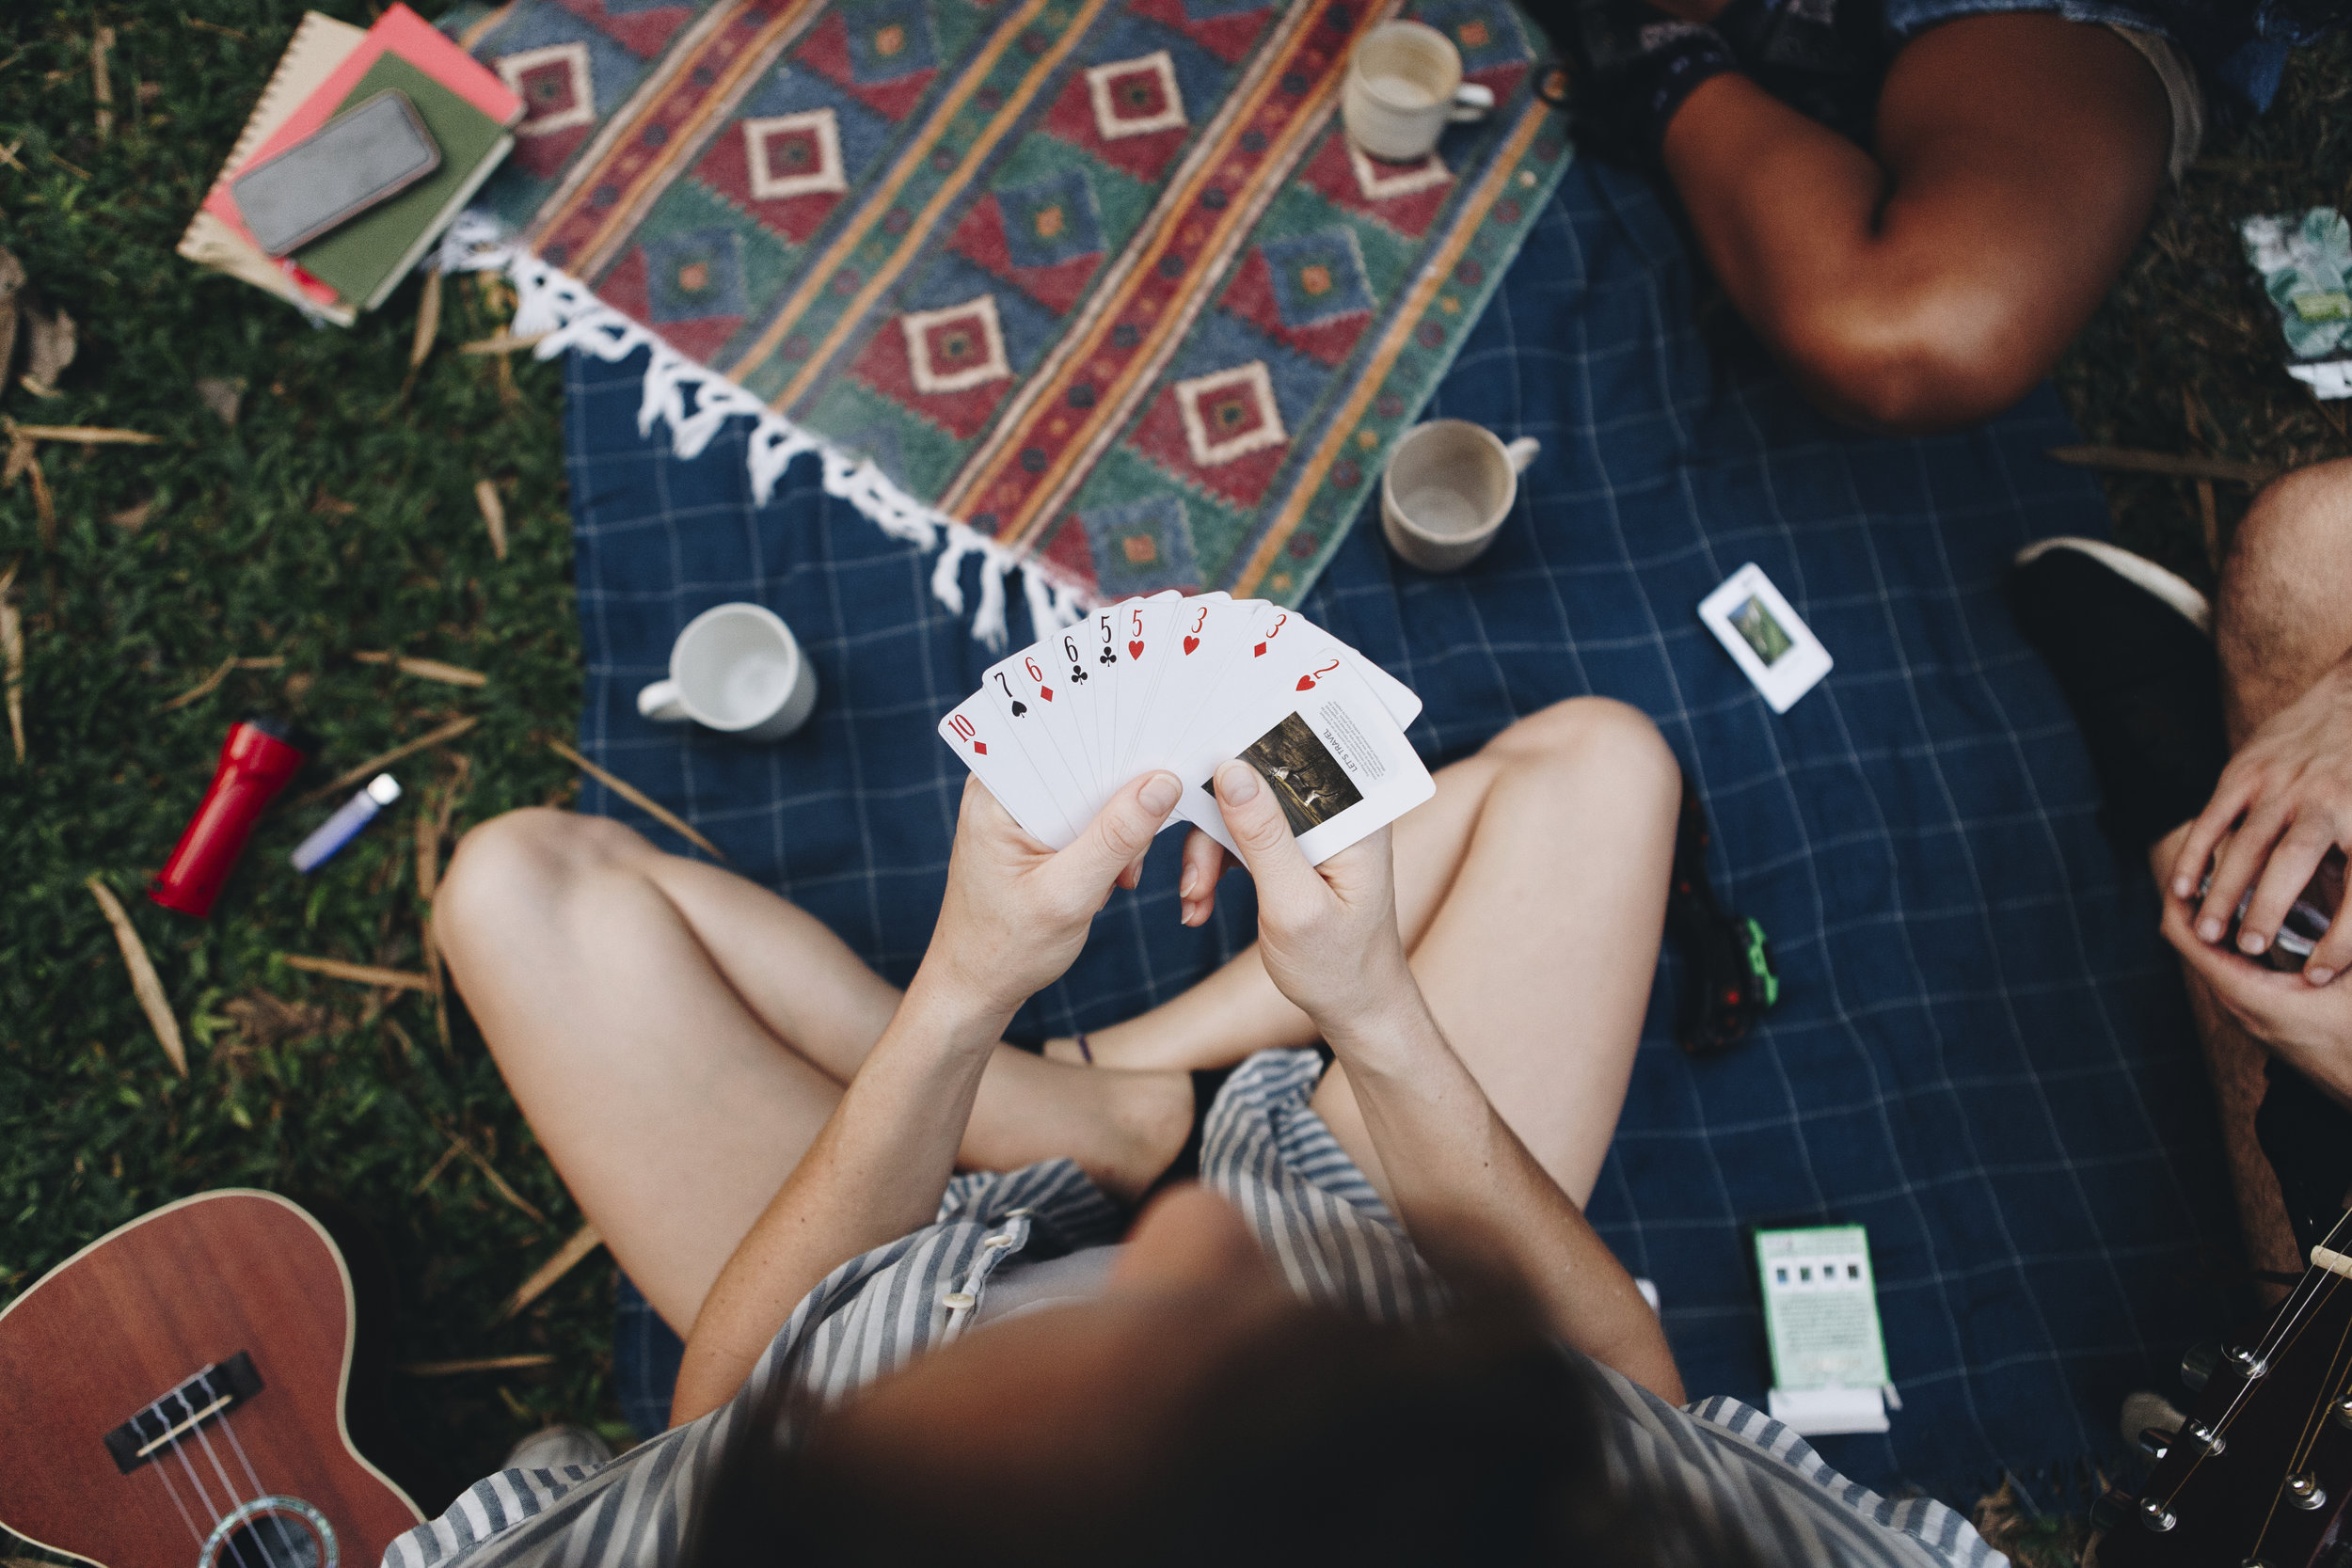 group-of-friends-playing-a-card-game-PTH6LBG.jpg